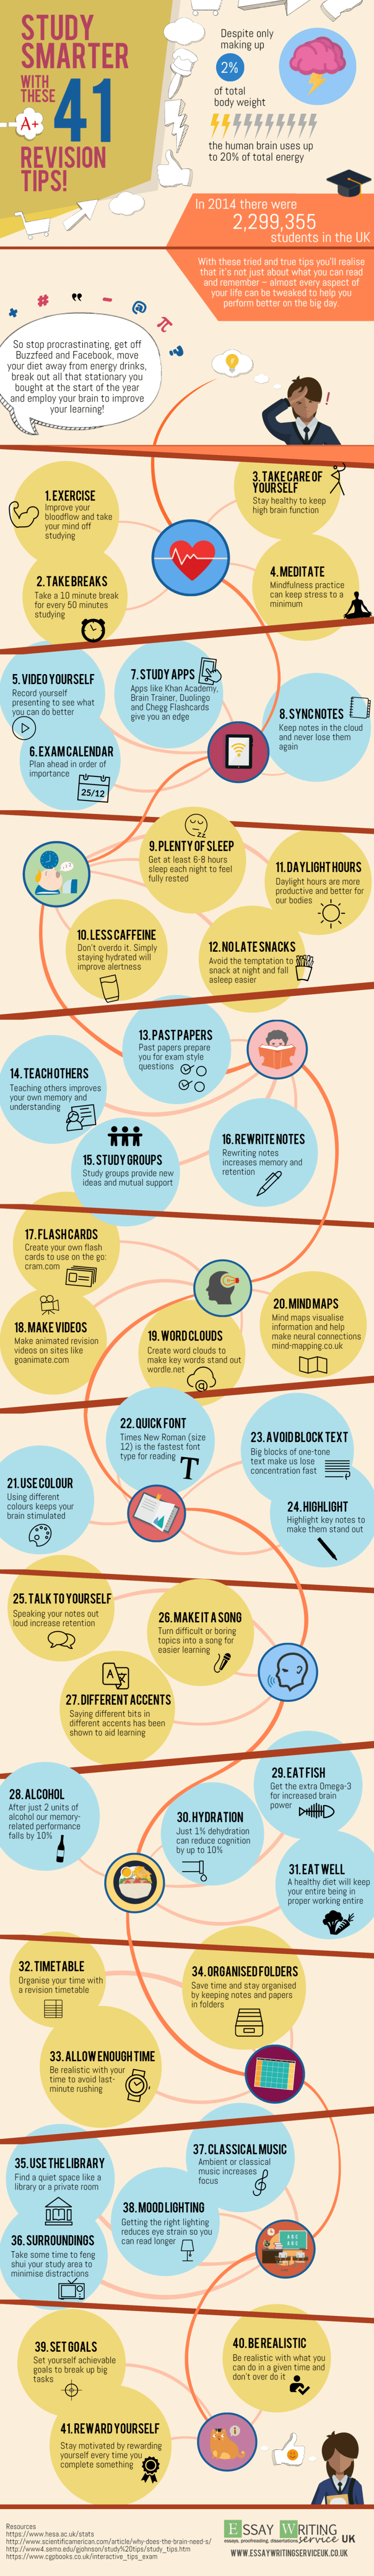 41 Revision Tips to Study Smarter Infographic